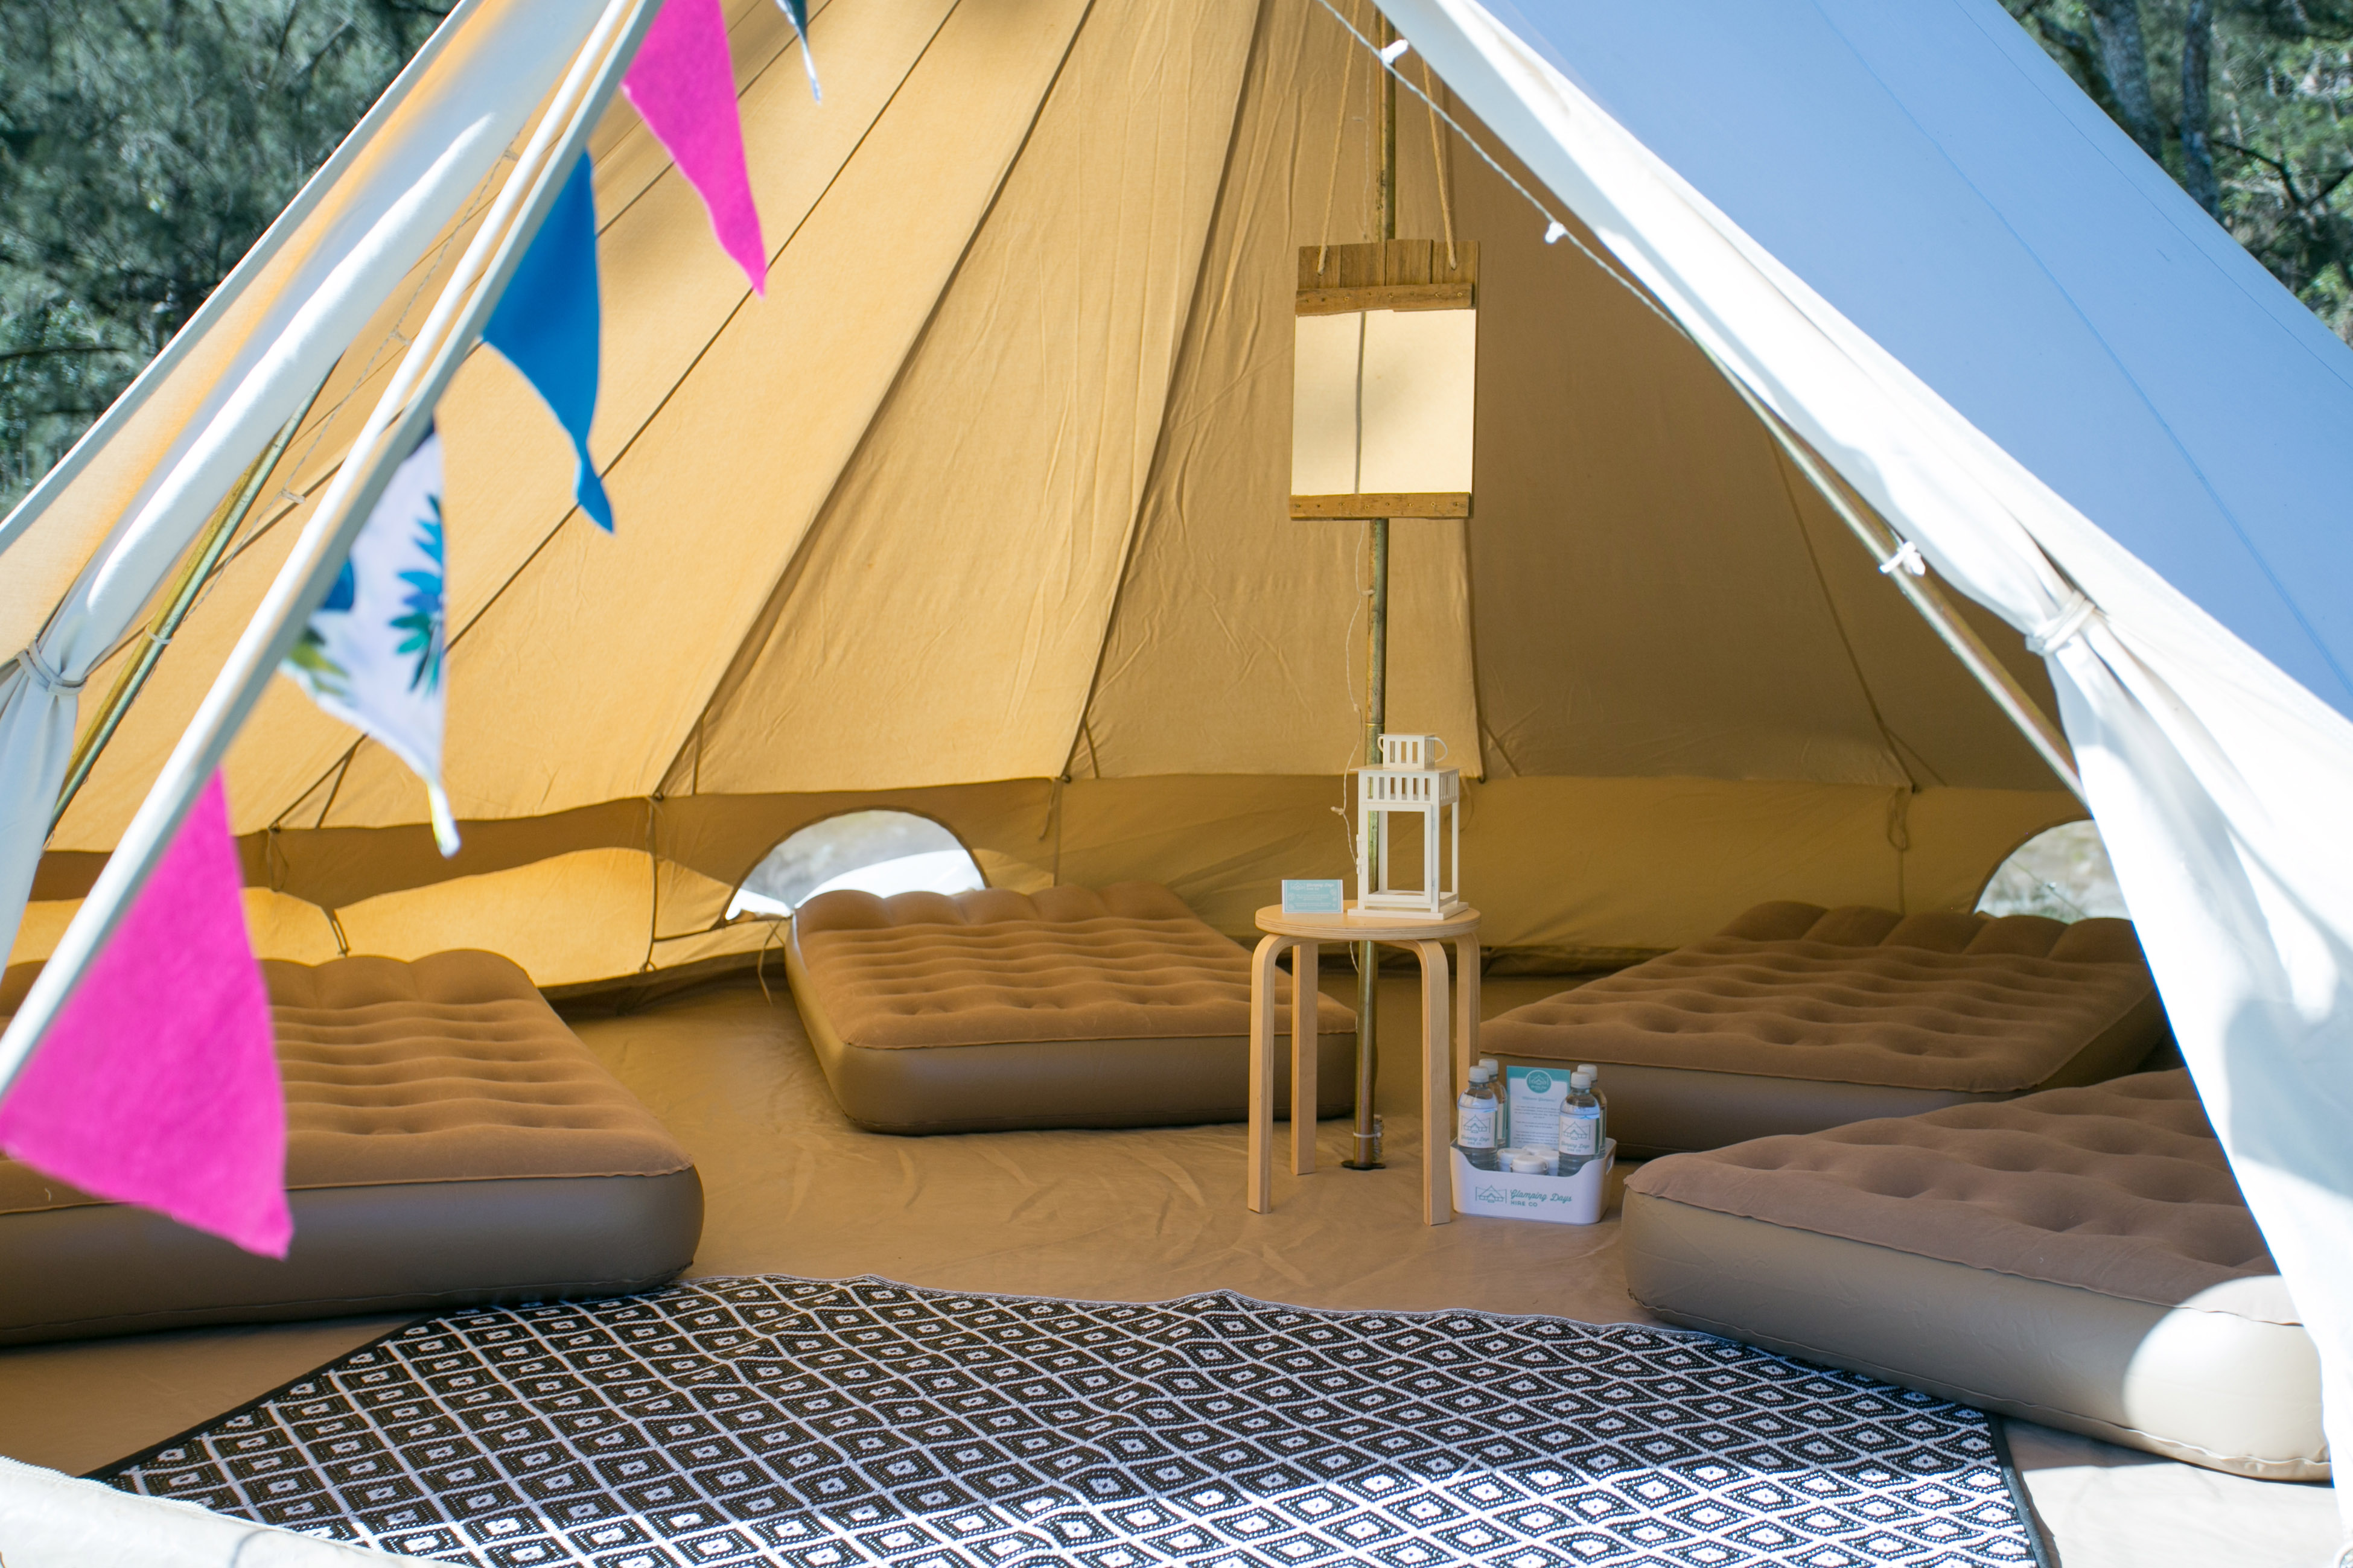 Backyard kids birthday parties glamping days hire co for Glamping ideas diy